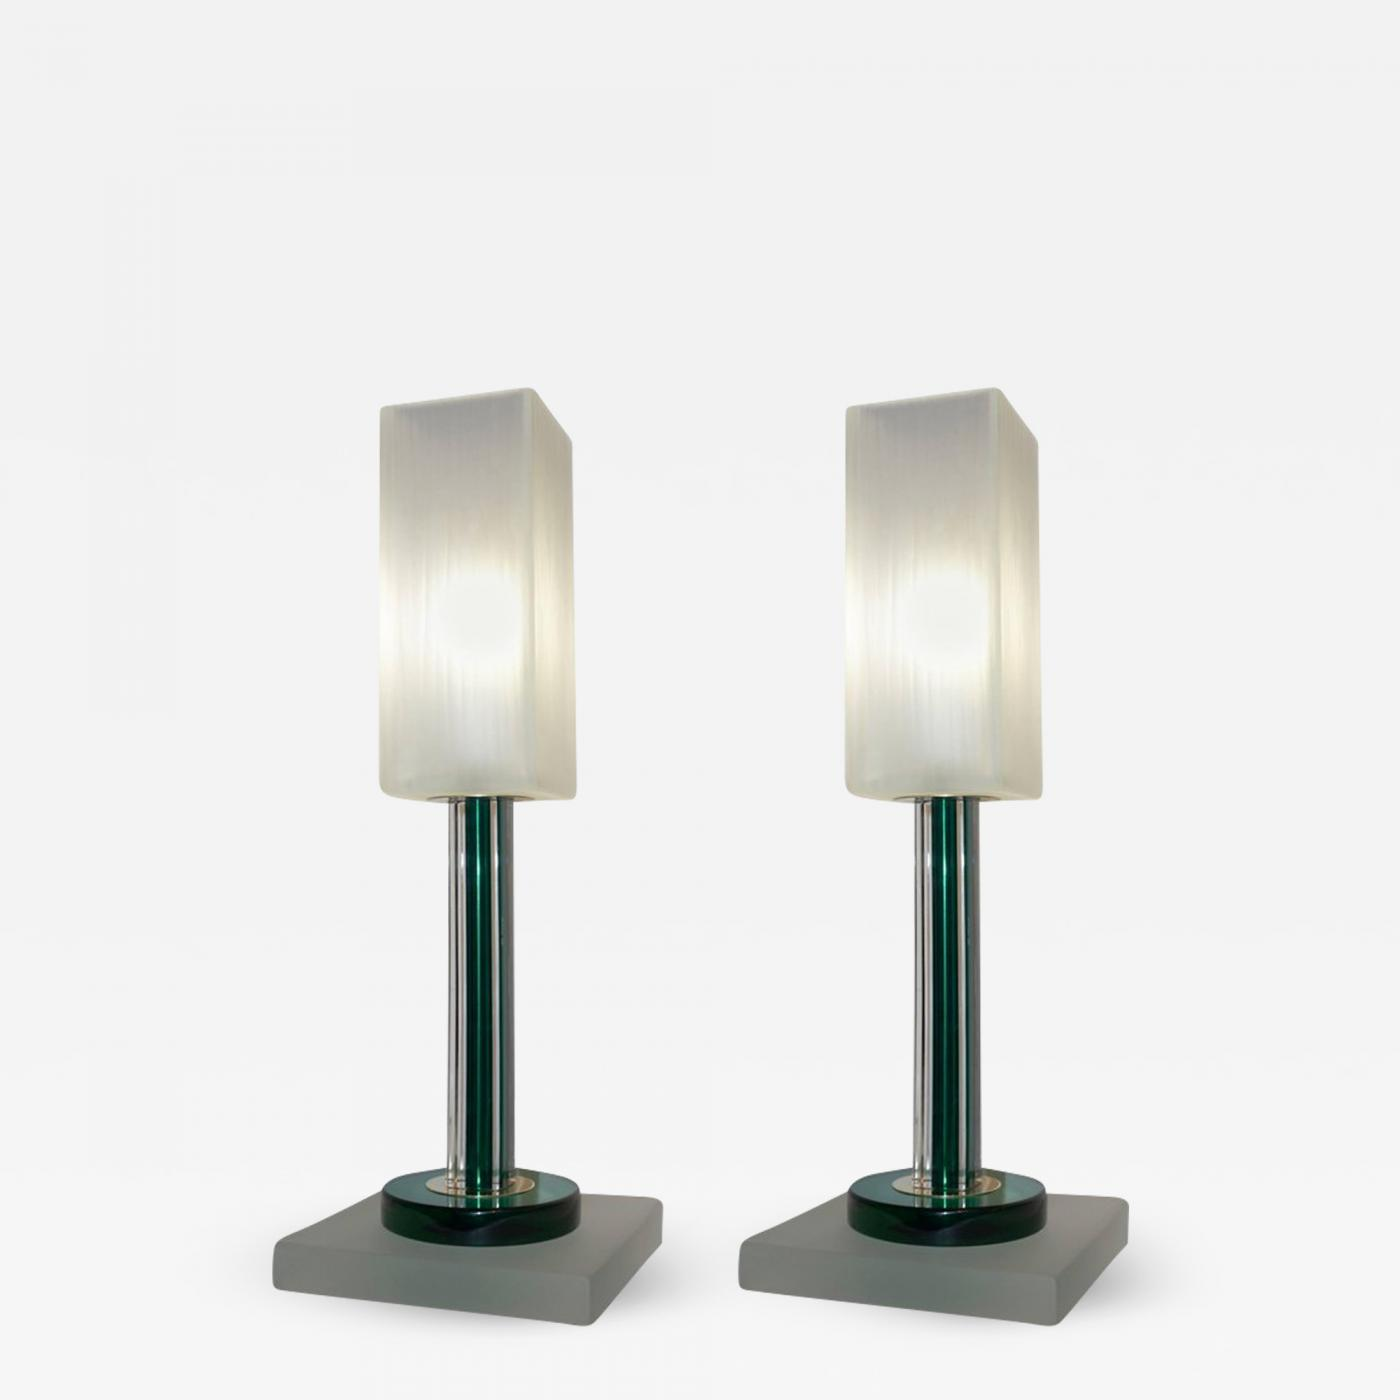 Vintage Table Lamps Paolo Venini Venini Vintage Green Pair Of Table Lamps With White Frosted Murano Glass Shades